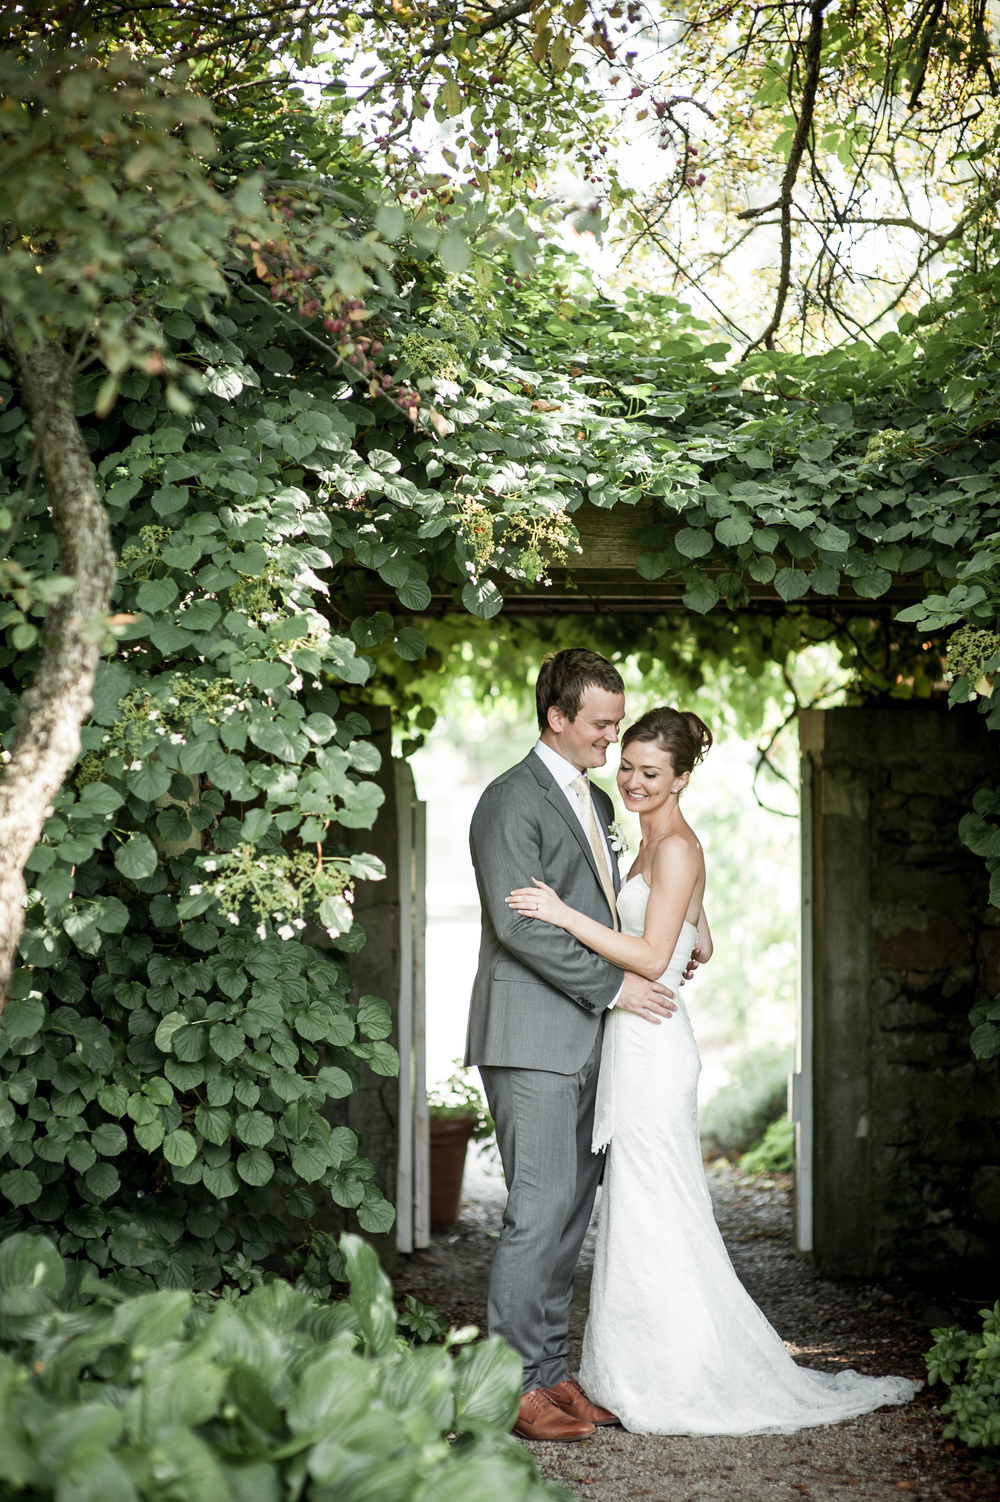 Jenna & Scott at Langdon Hall